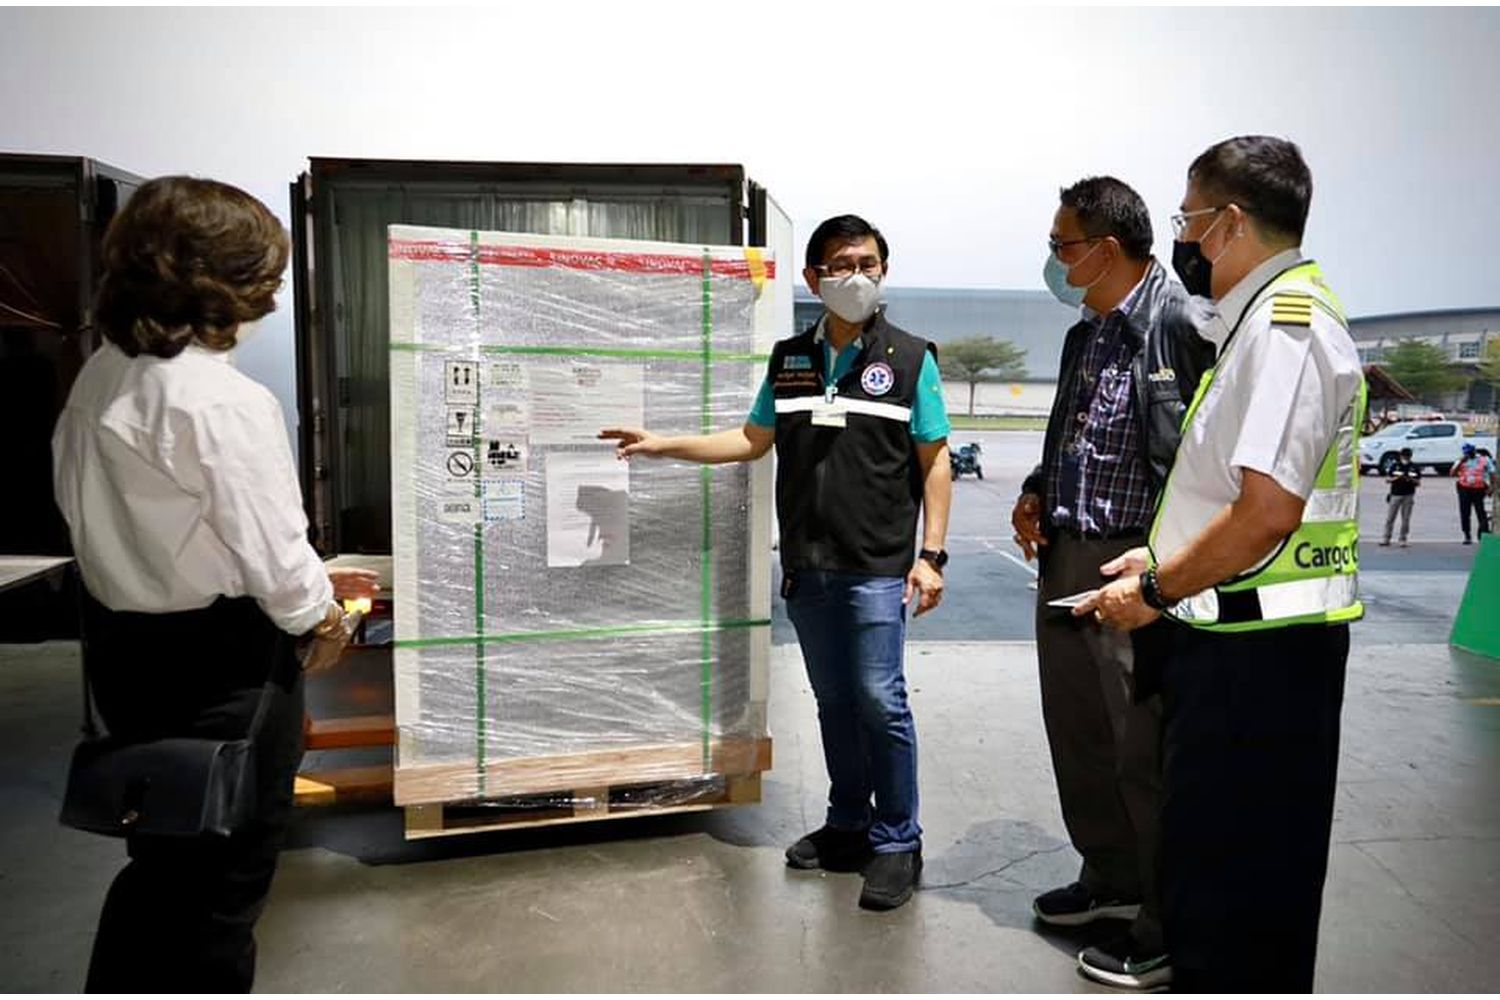 Officials inspect a crate containing some of the 800,000 shots of CoronaVac that arrived at Suvarnabhumi Airport on Saturday. (Photo from อนุทิน ชาญวีรกูล Facebook)